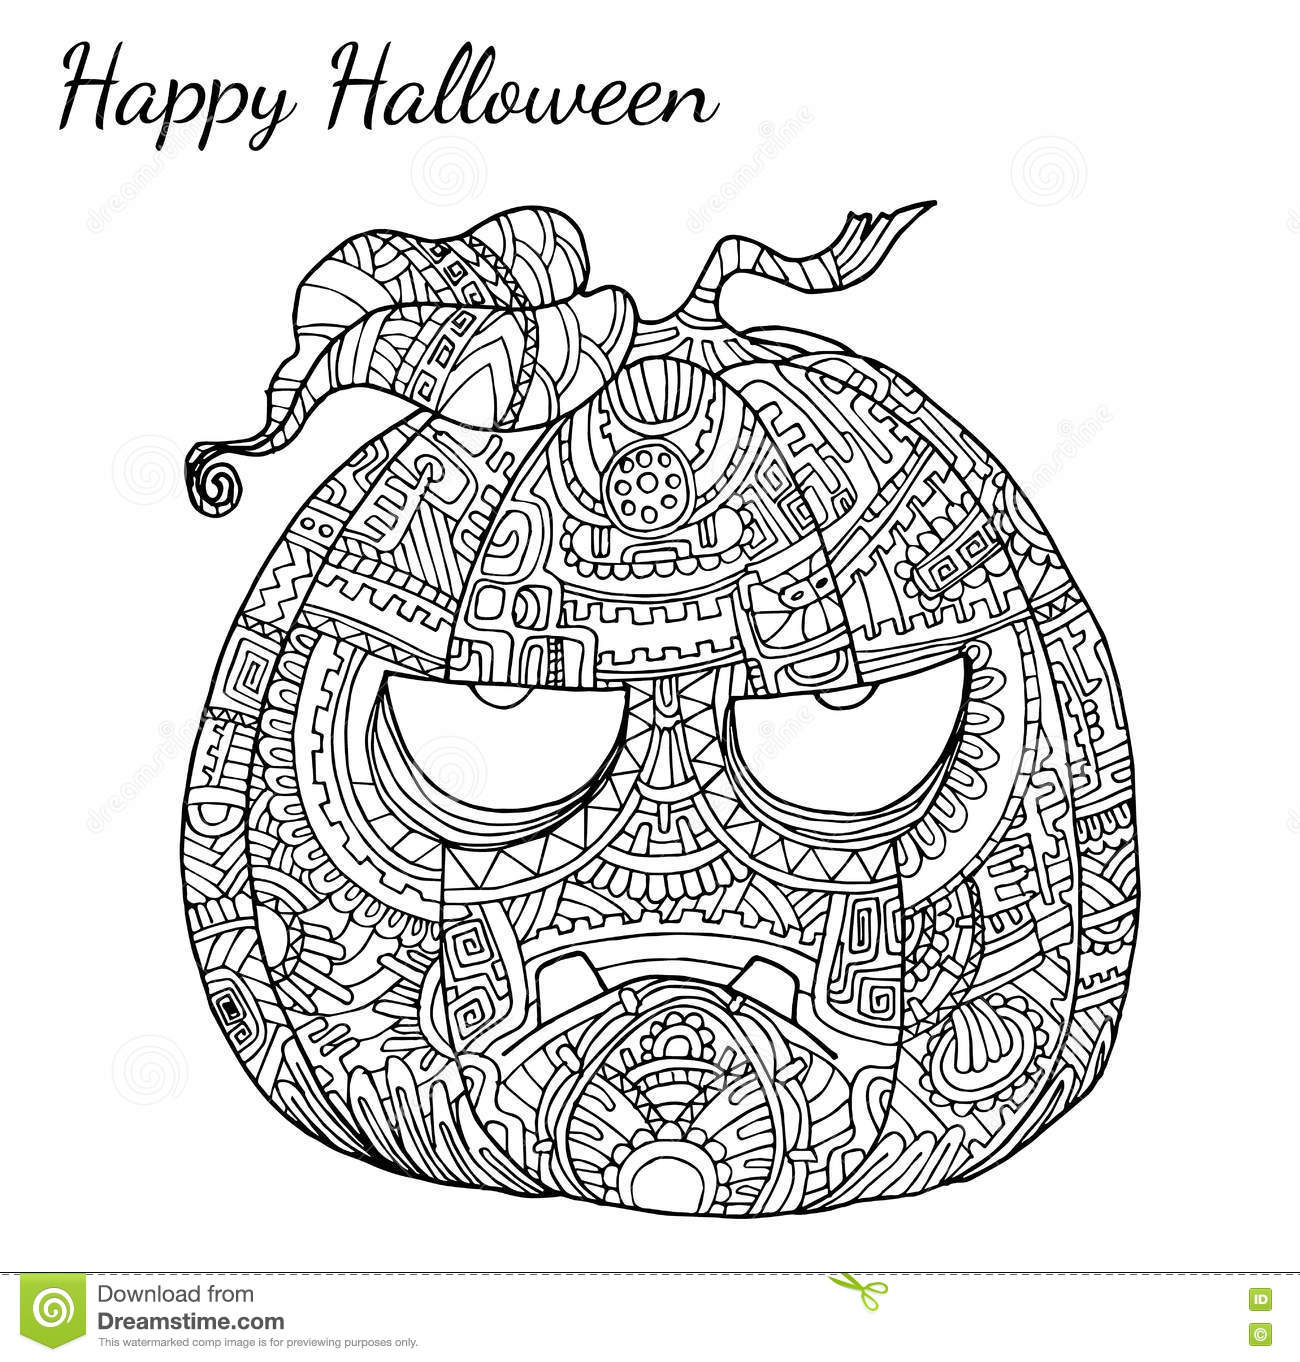 Kurbis Zentangle Vektor In Halloween Vektor Abbildung